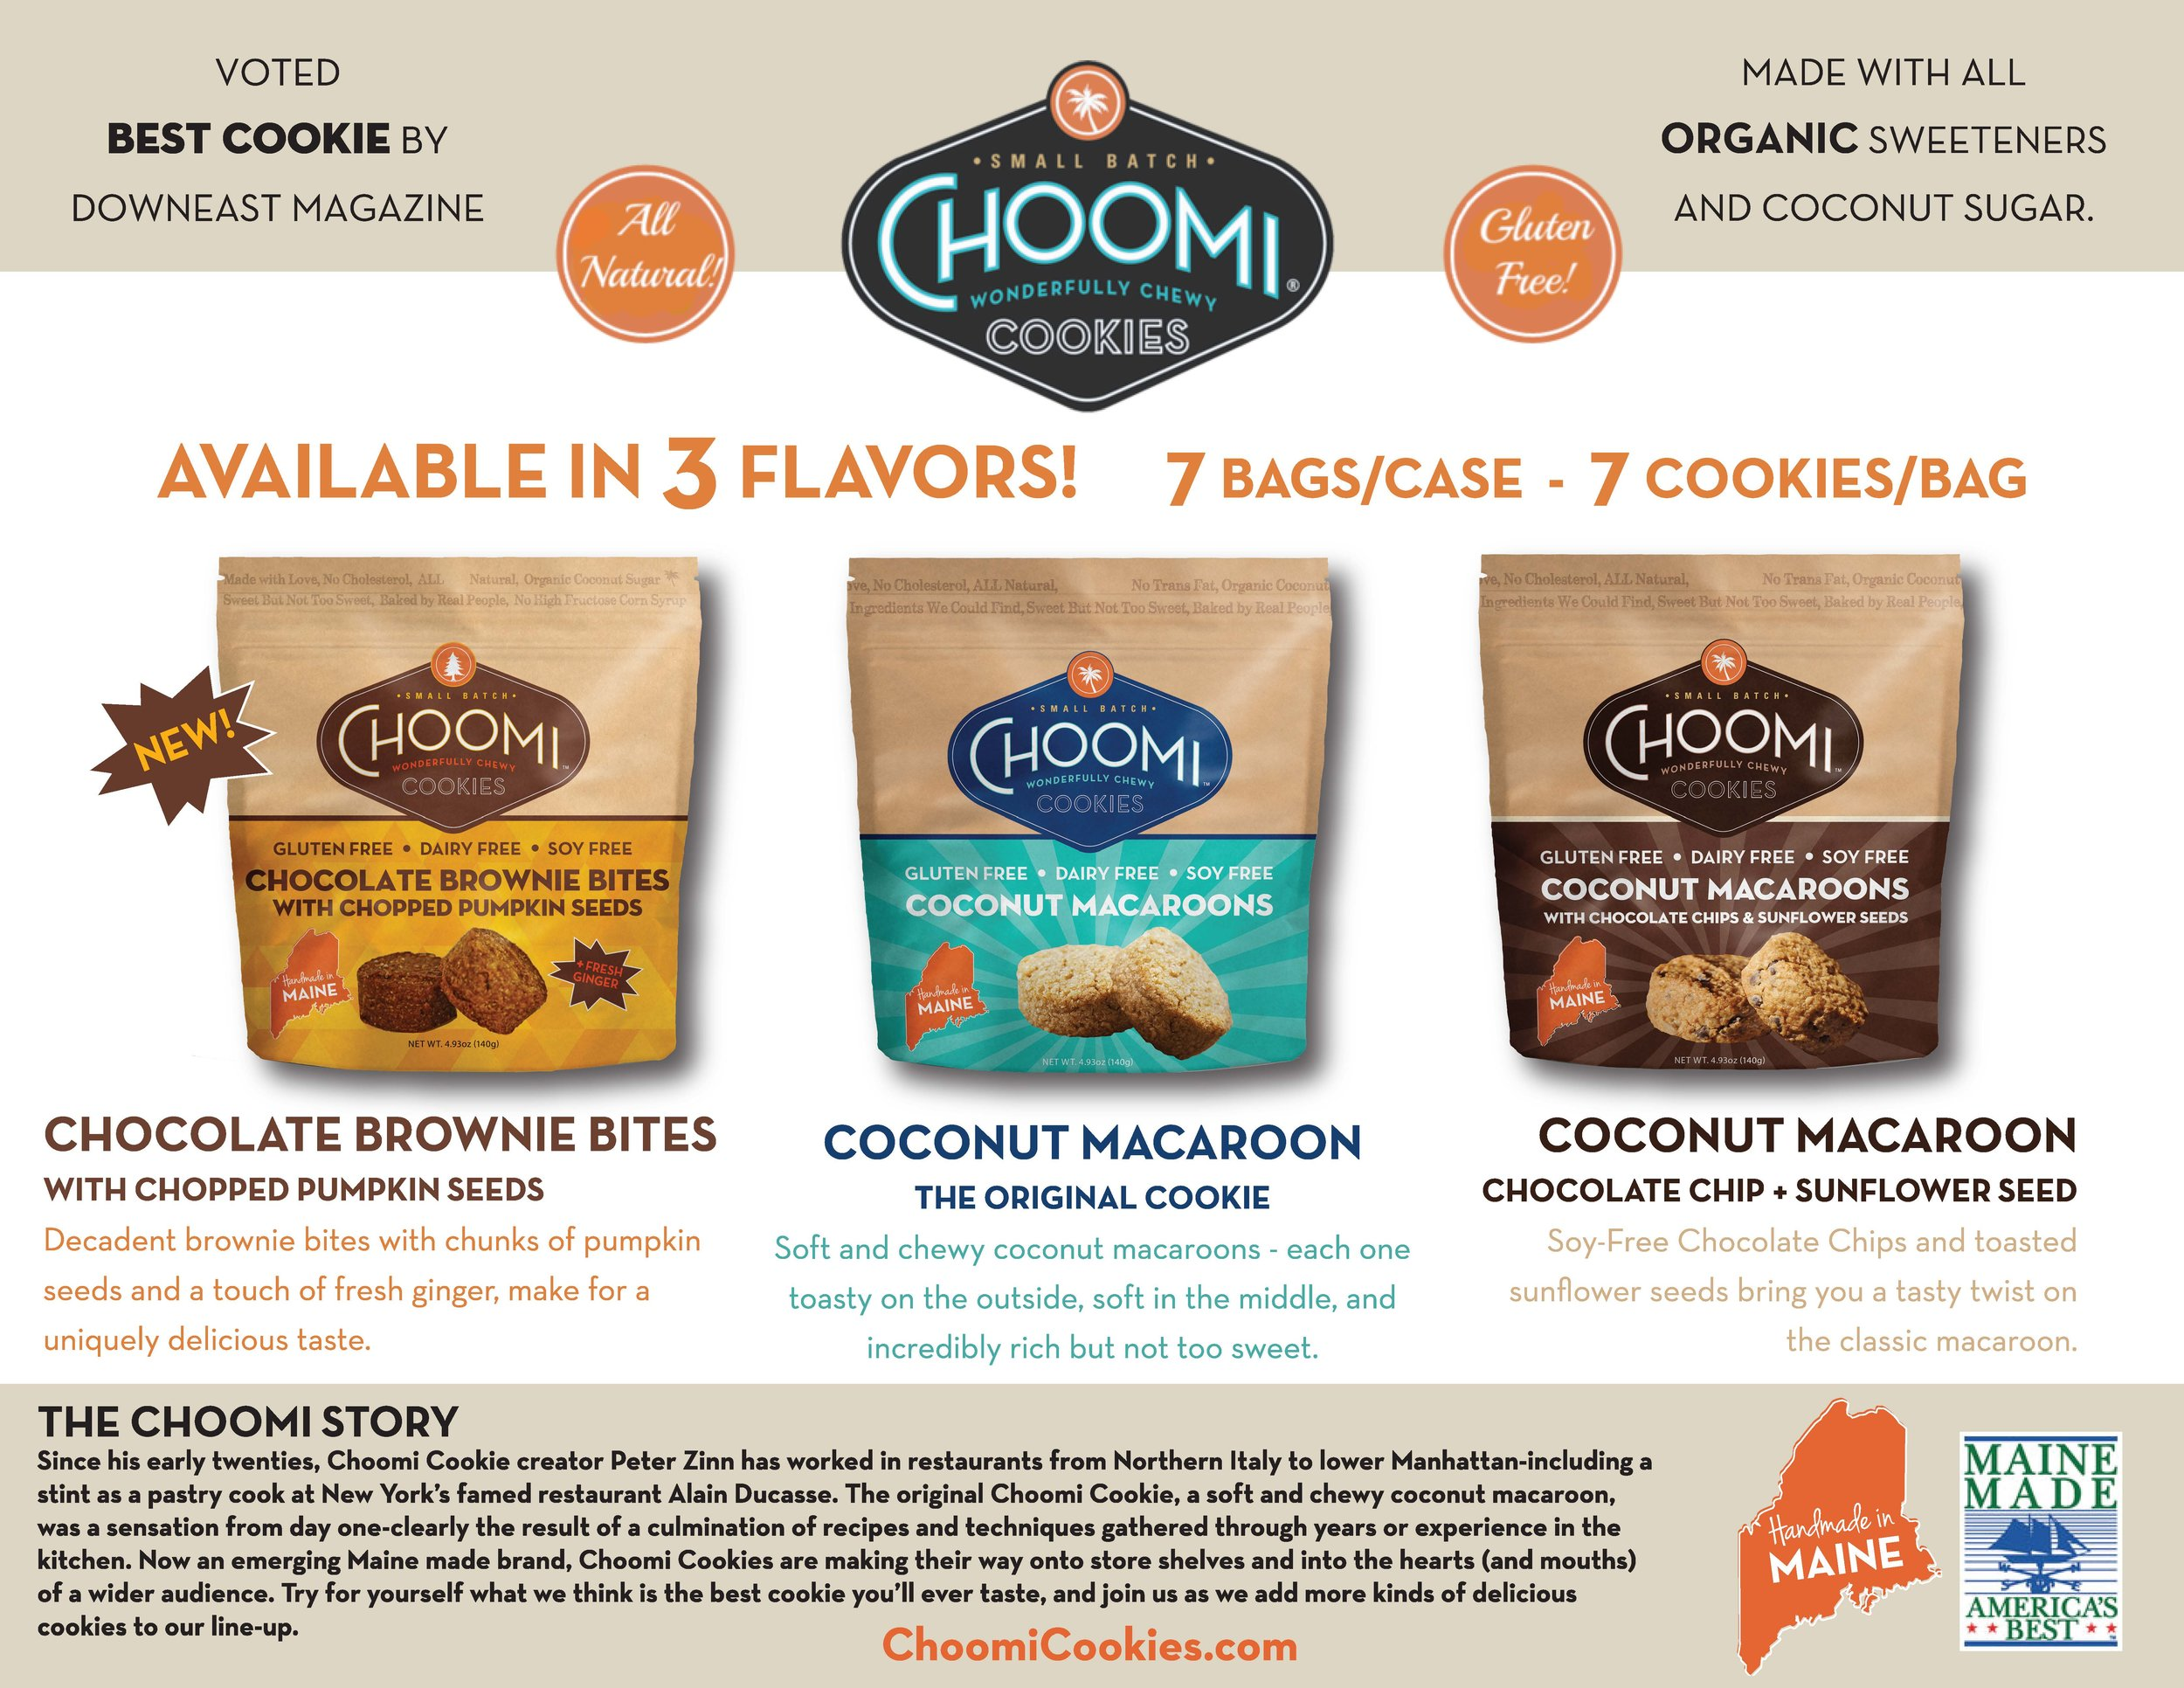 CHOOMI COOKIE_SELL SHEET 4.2019 FOR PRINT_Page_1.jpg